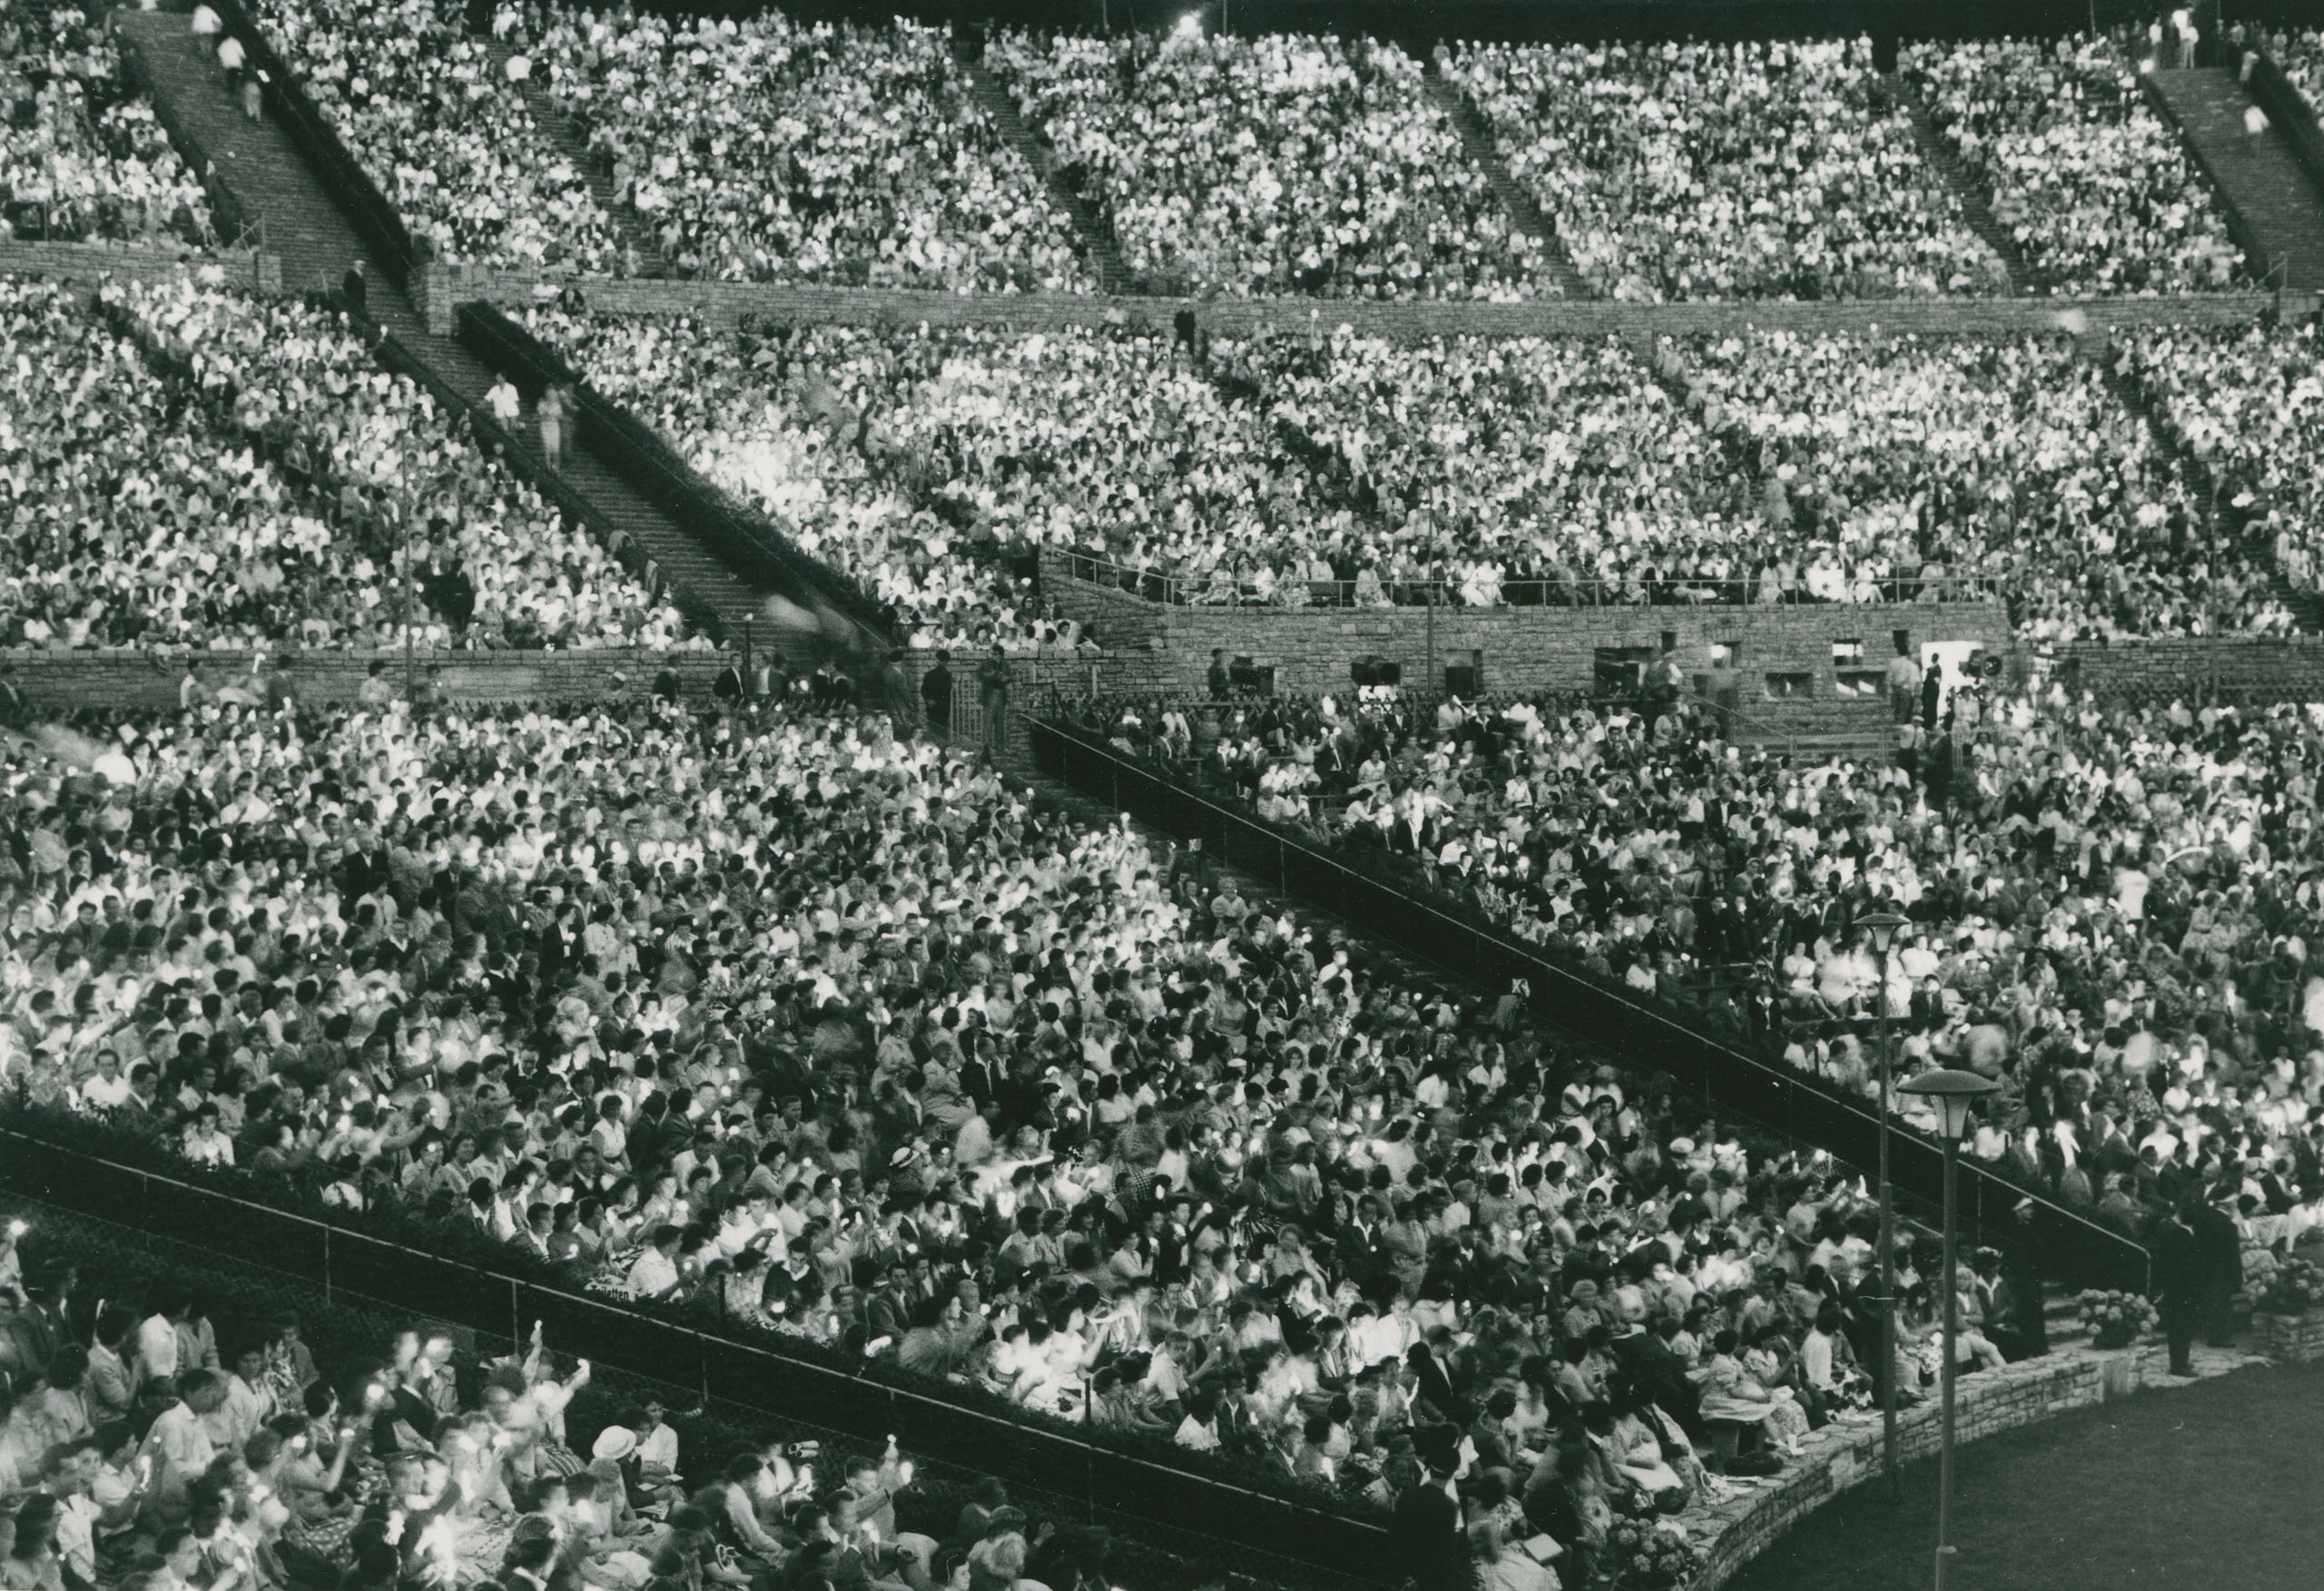 Black and white photo: rows of seats full of spectators